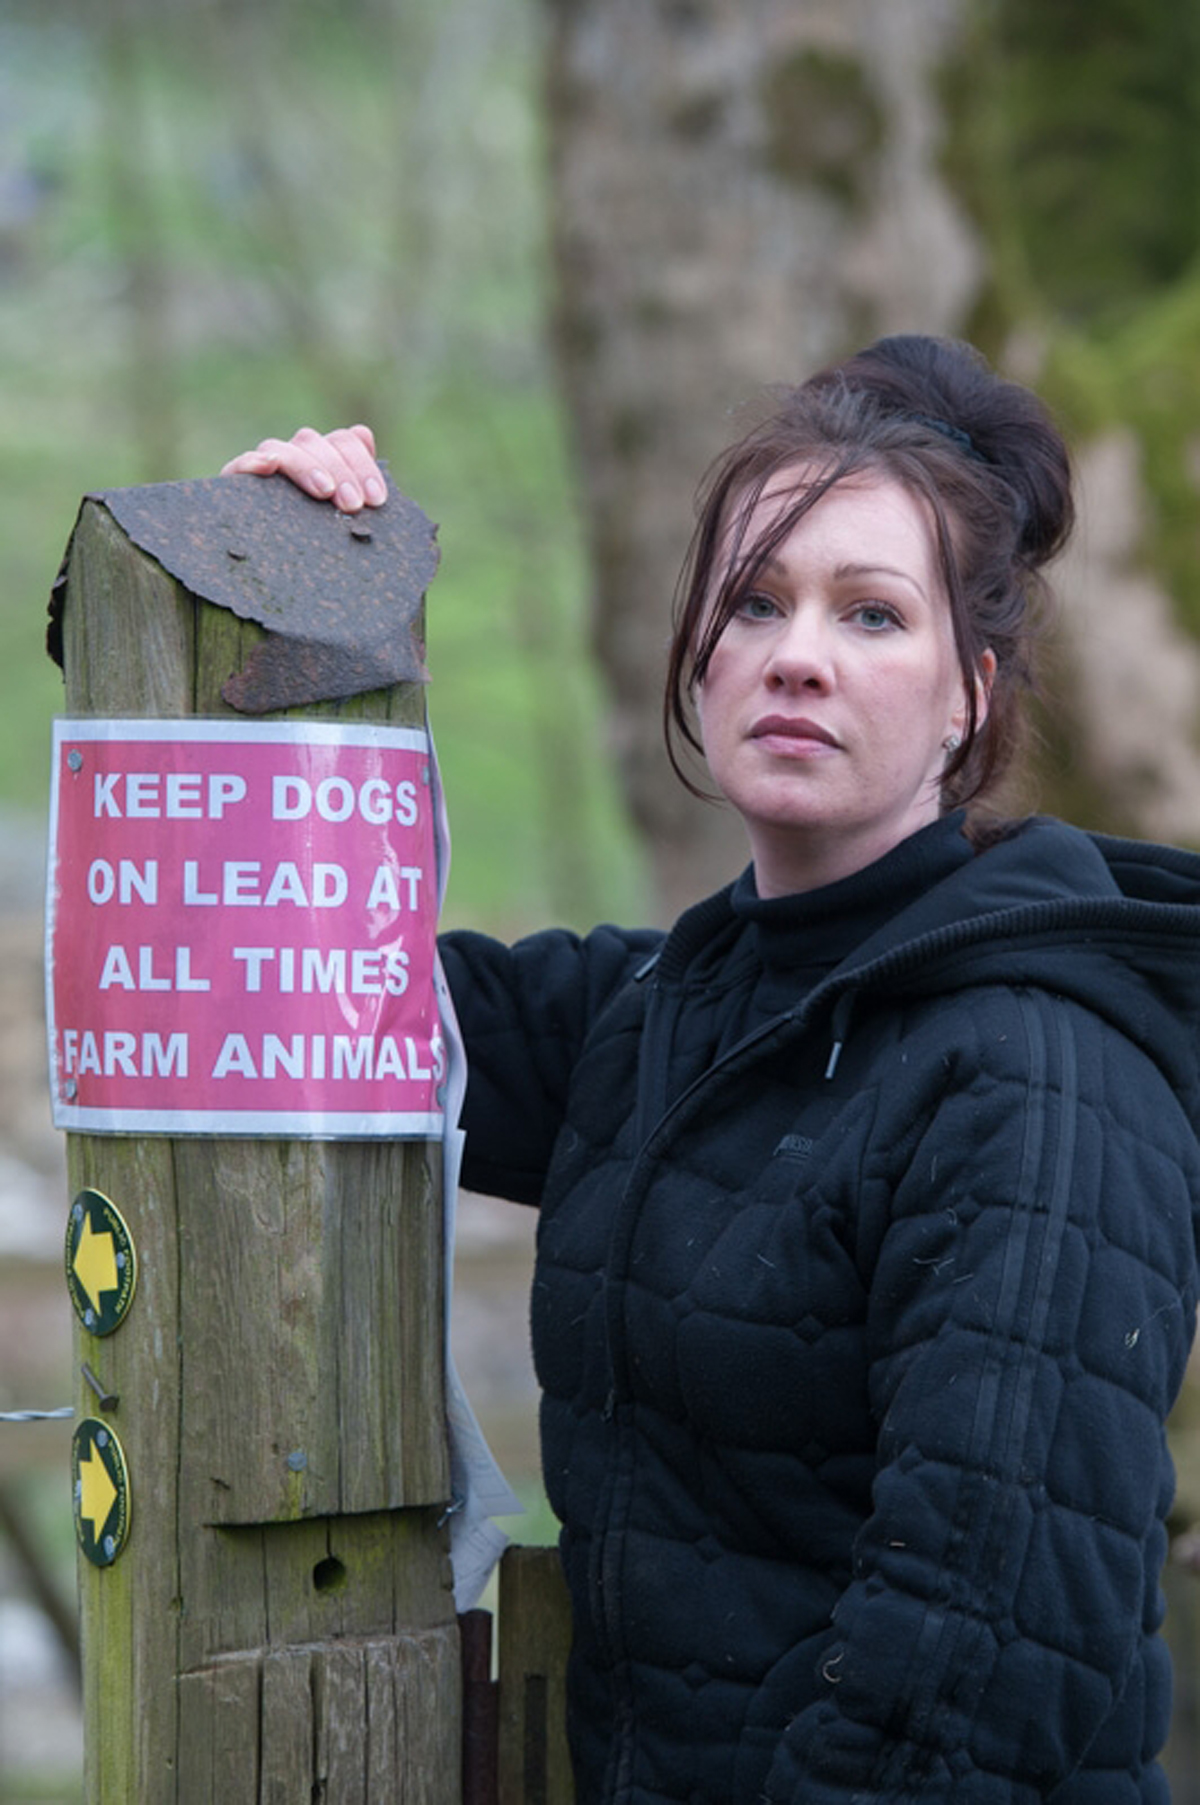 East Lancs farmer horrified after finding 'gruesomely' savaged sheep